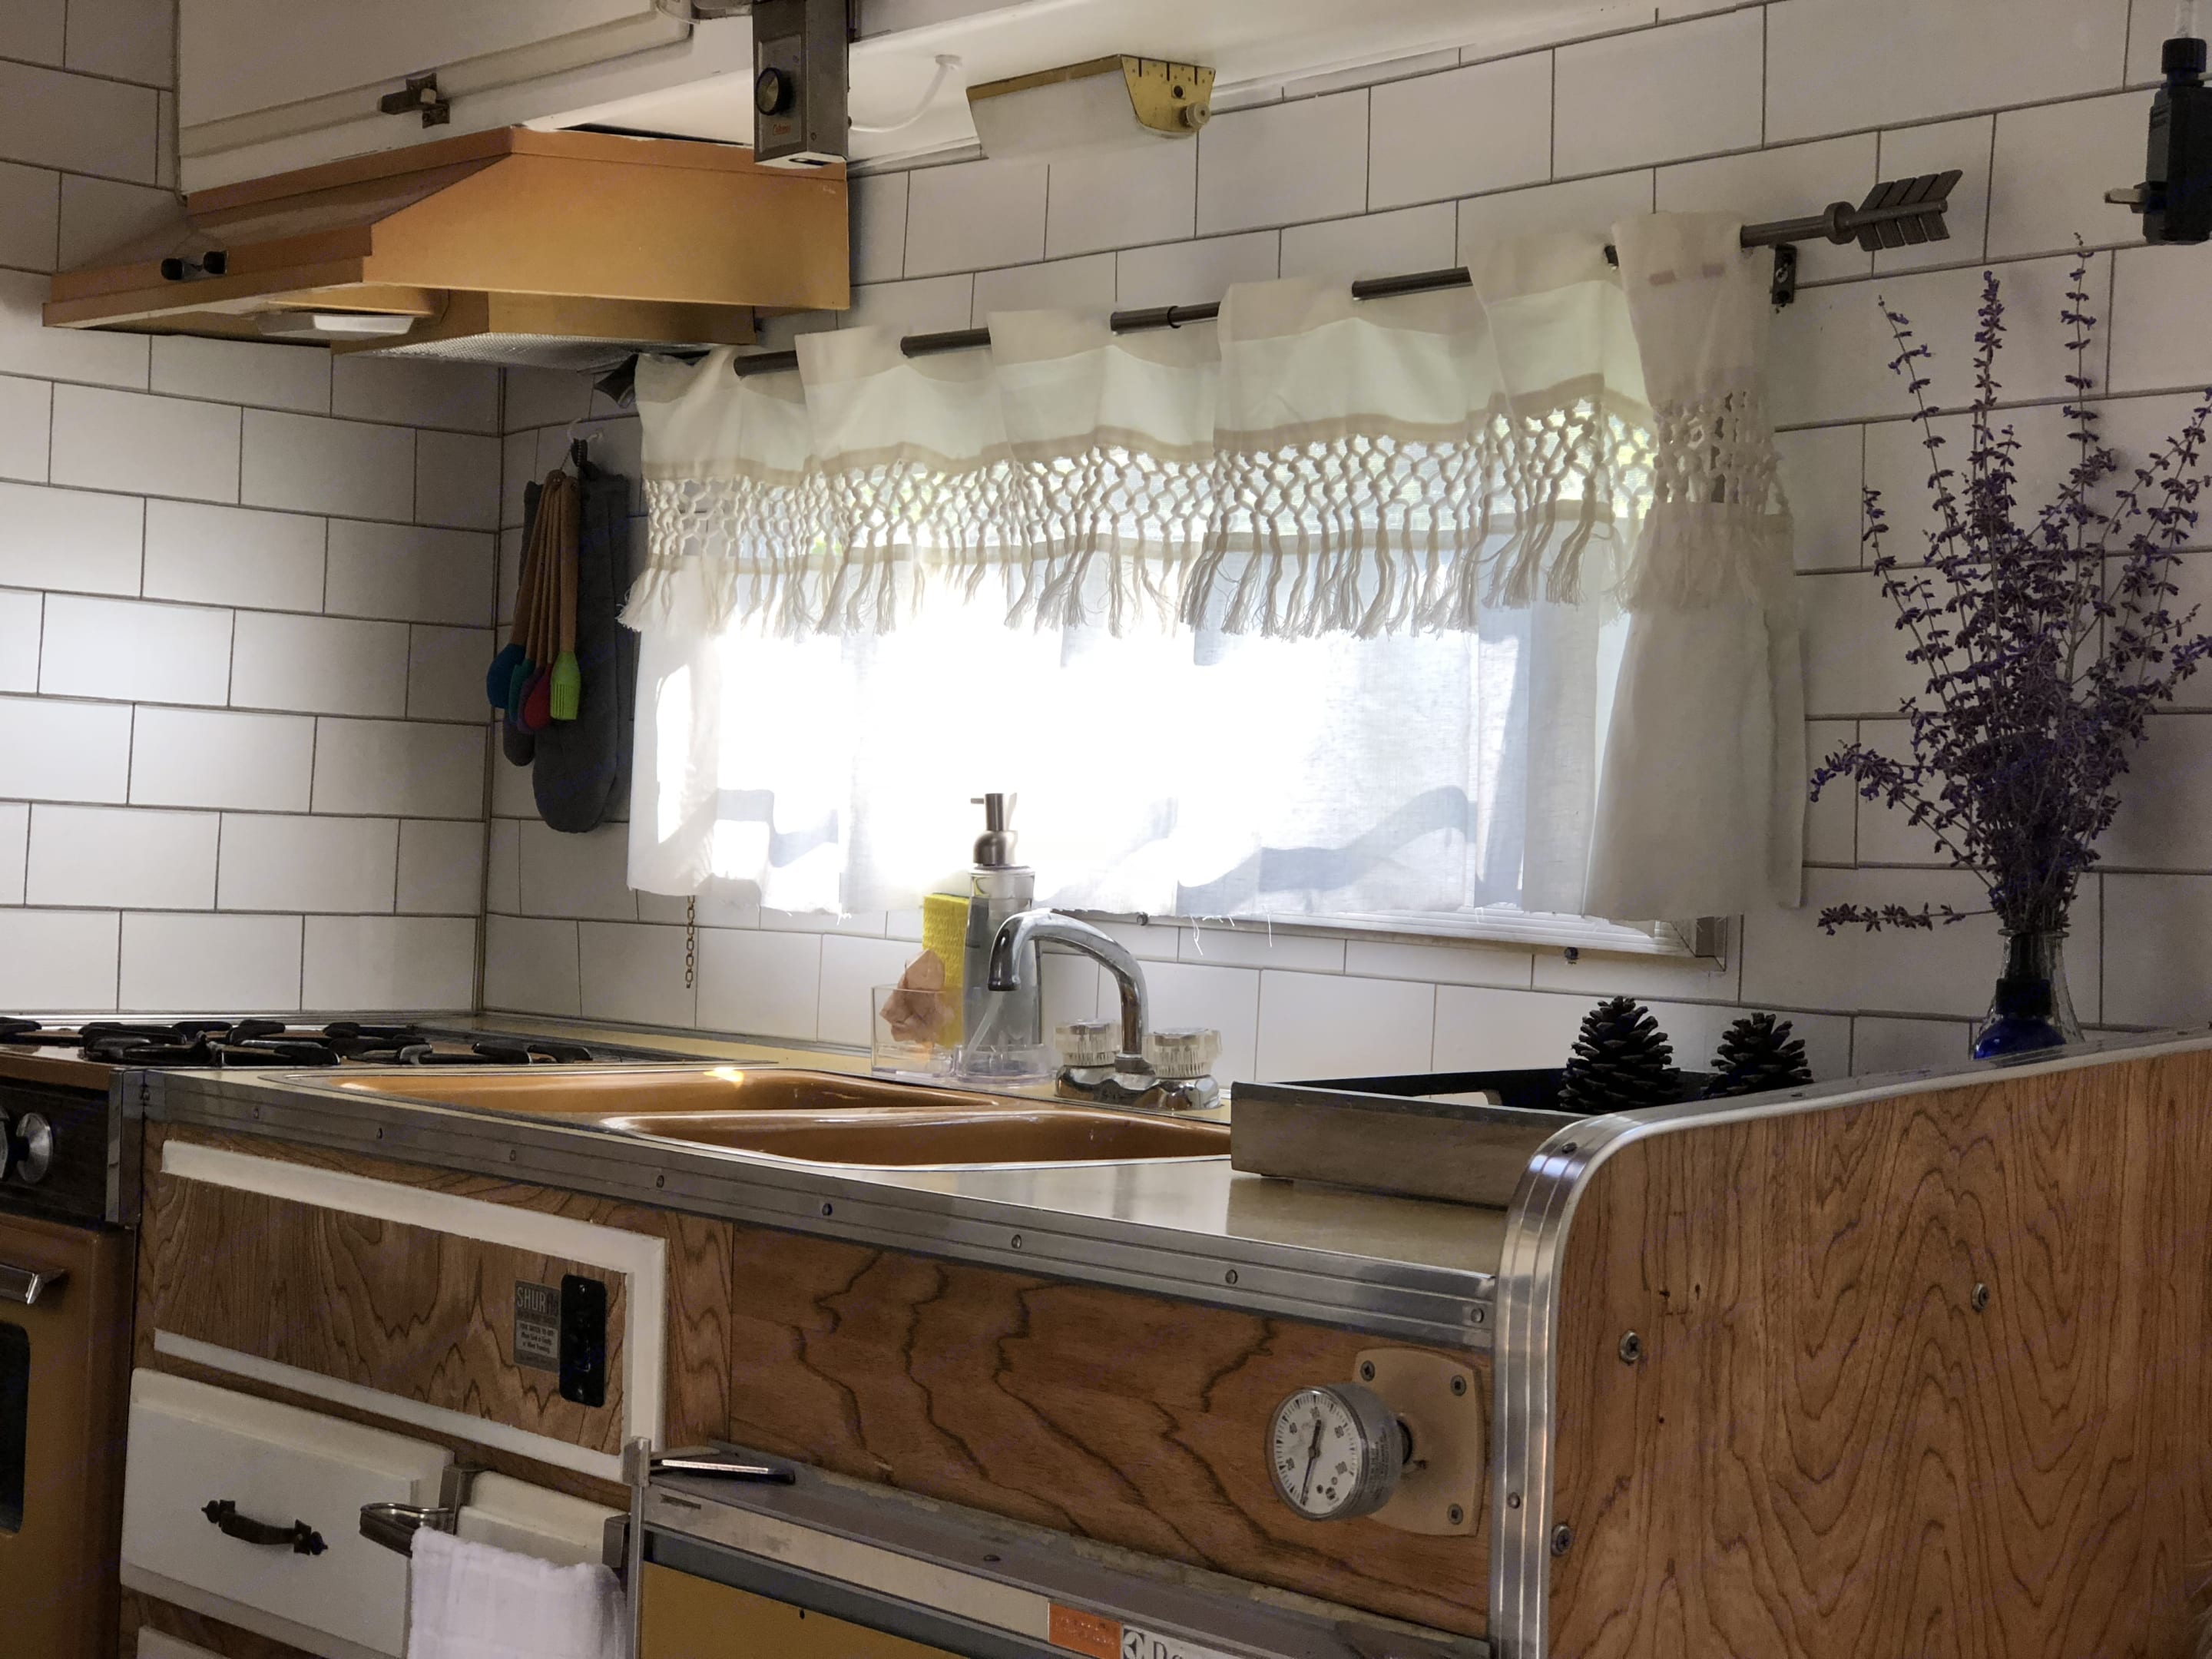 The kitchen space to cook